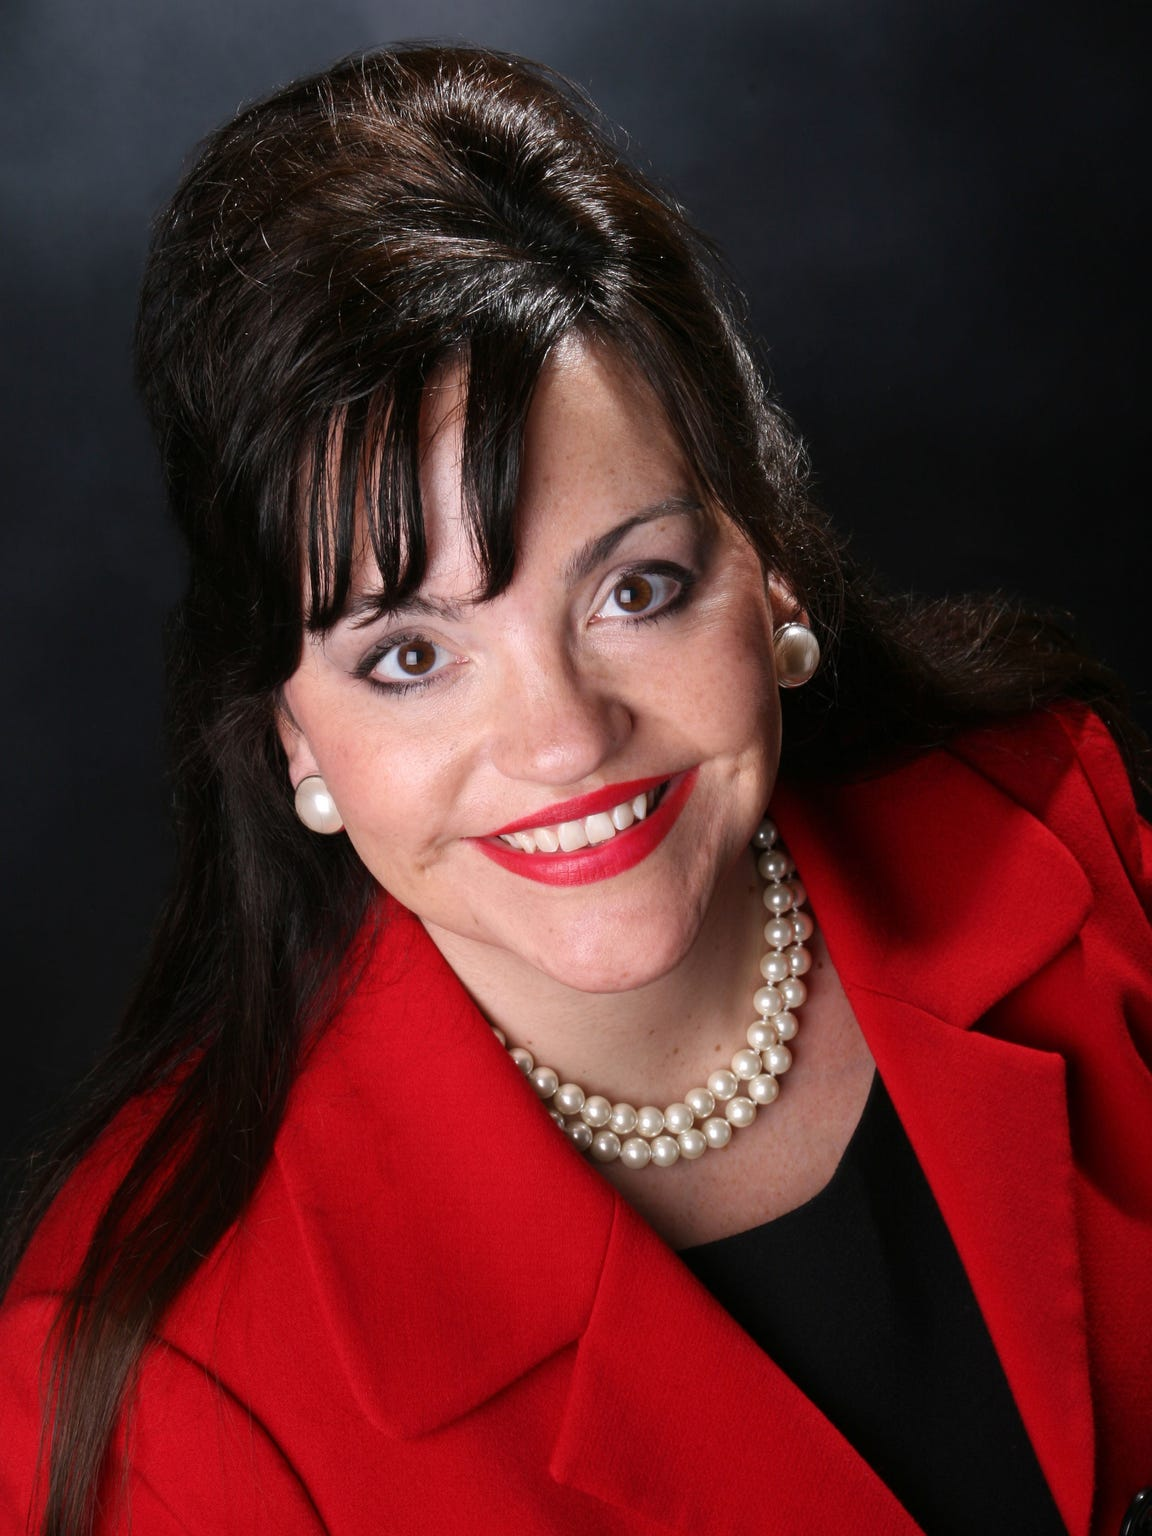 Kristi Fulnecky is the president and attorney of Fulnecky